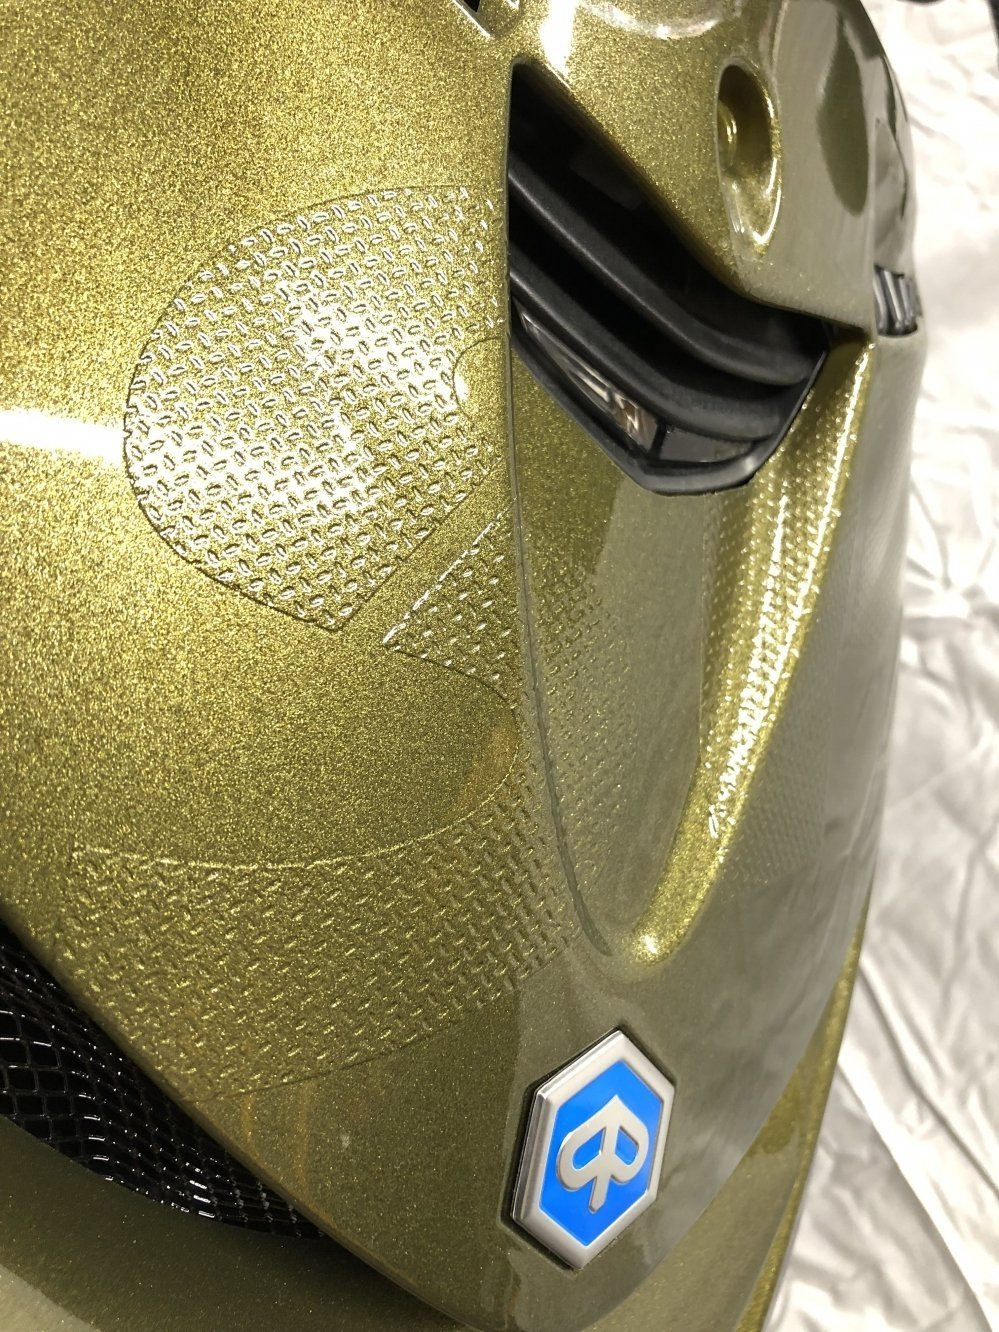 Metallic-Groen-Piaggio-Scooter-close-up-zip-sp-sport-iget-delft-rotterdam-spijkernisse-leiden